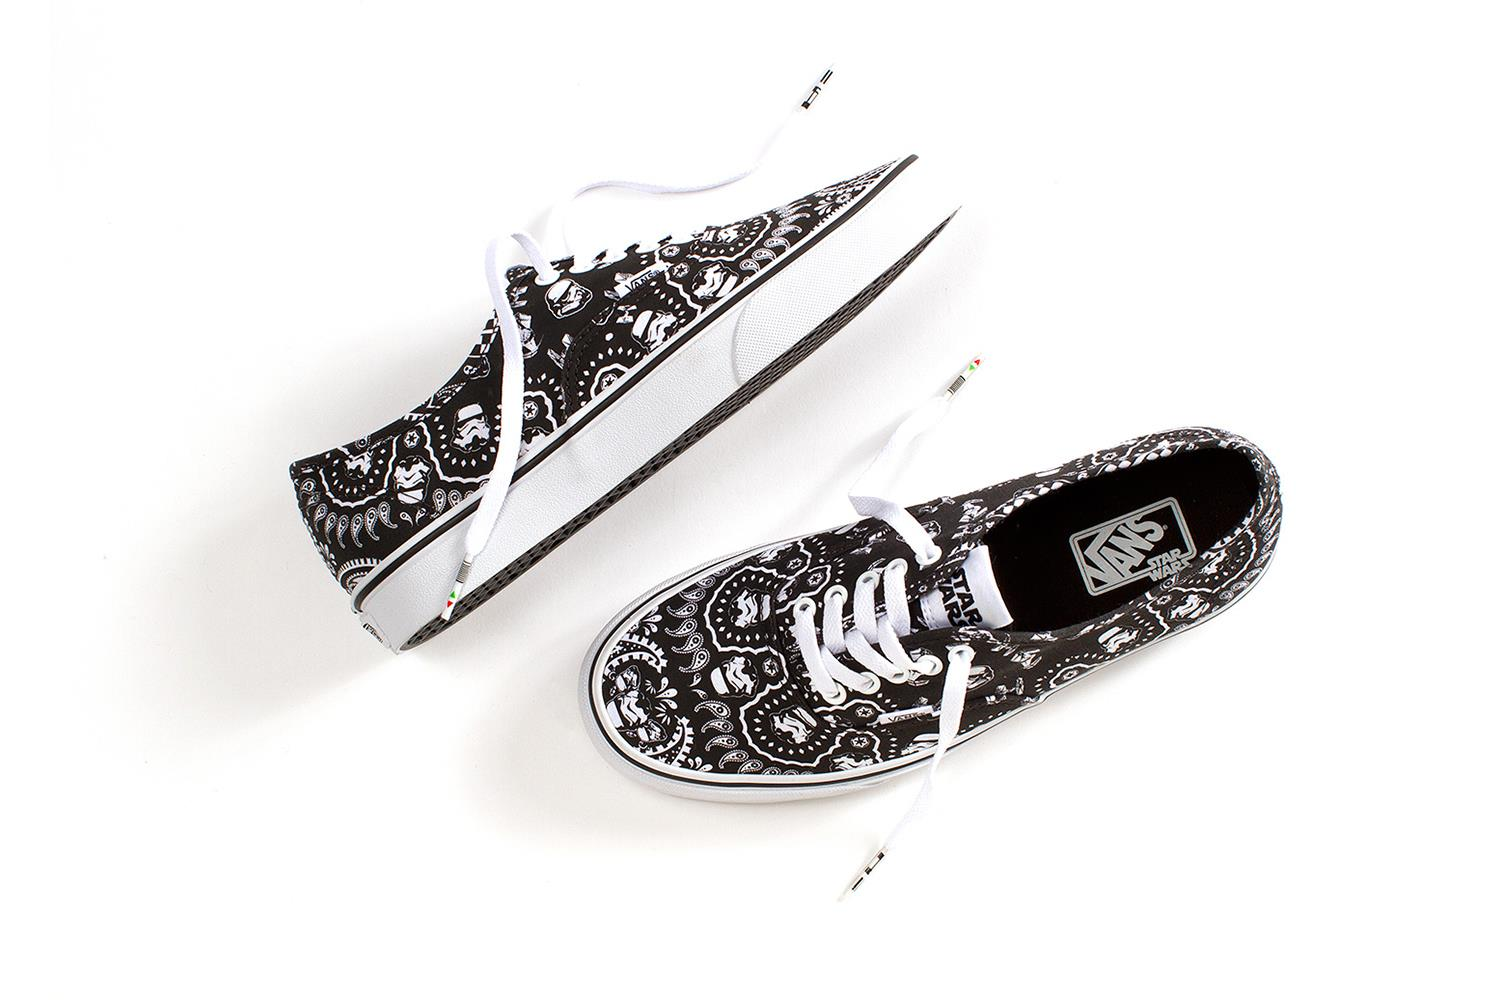 ff8114b2df The Vans x Star Wars Classics and Apparel collection is now available at  Vans boutiques nationwide.